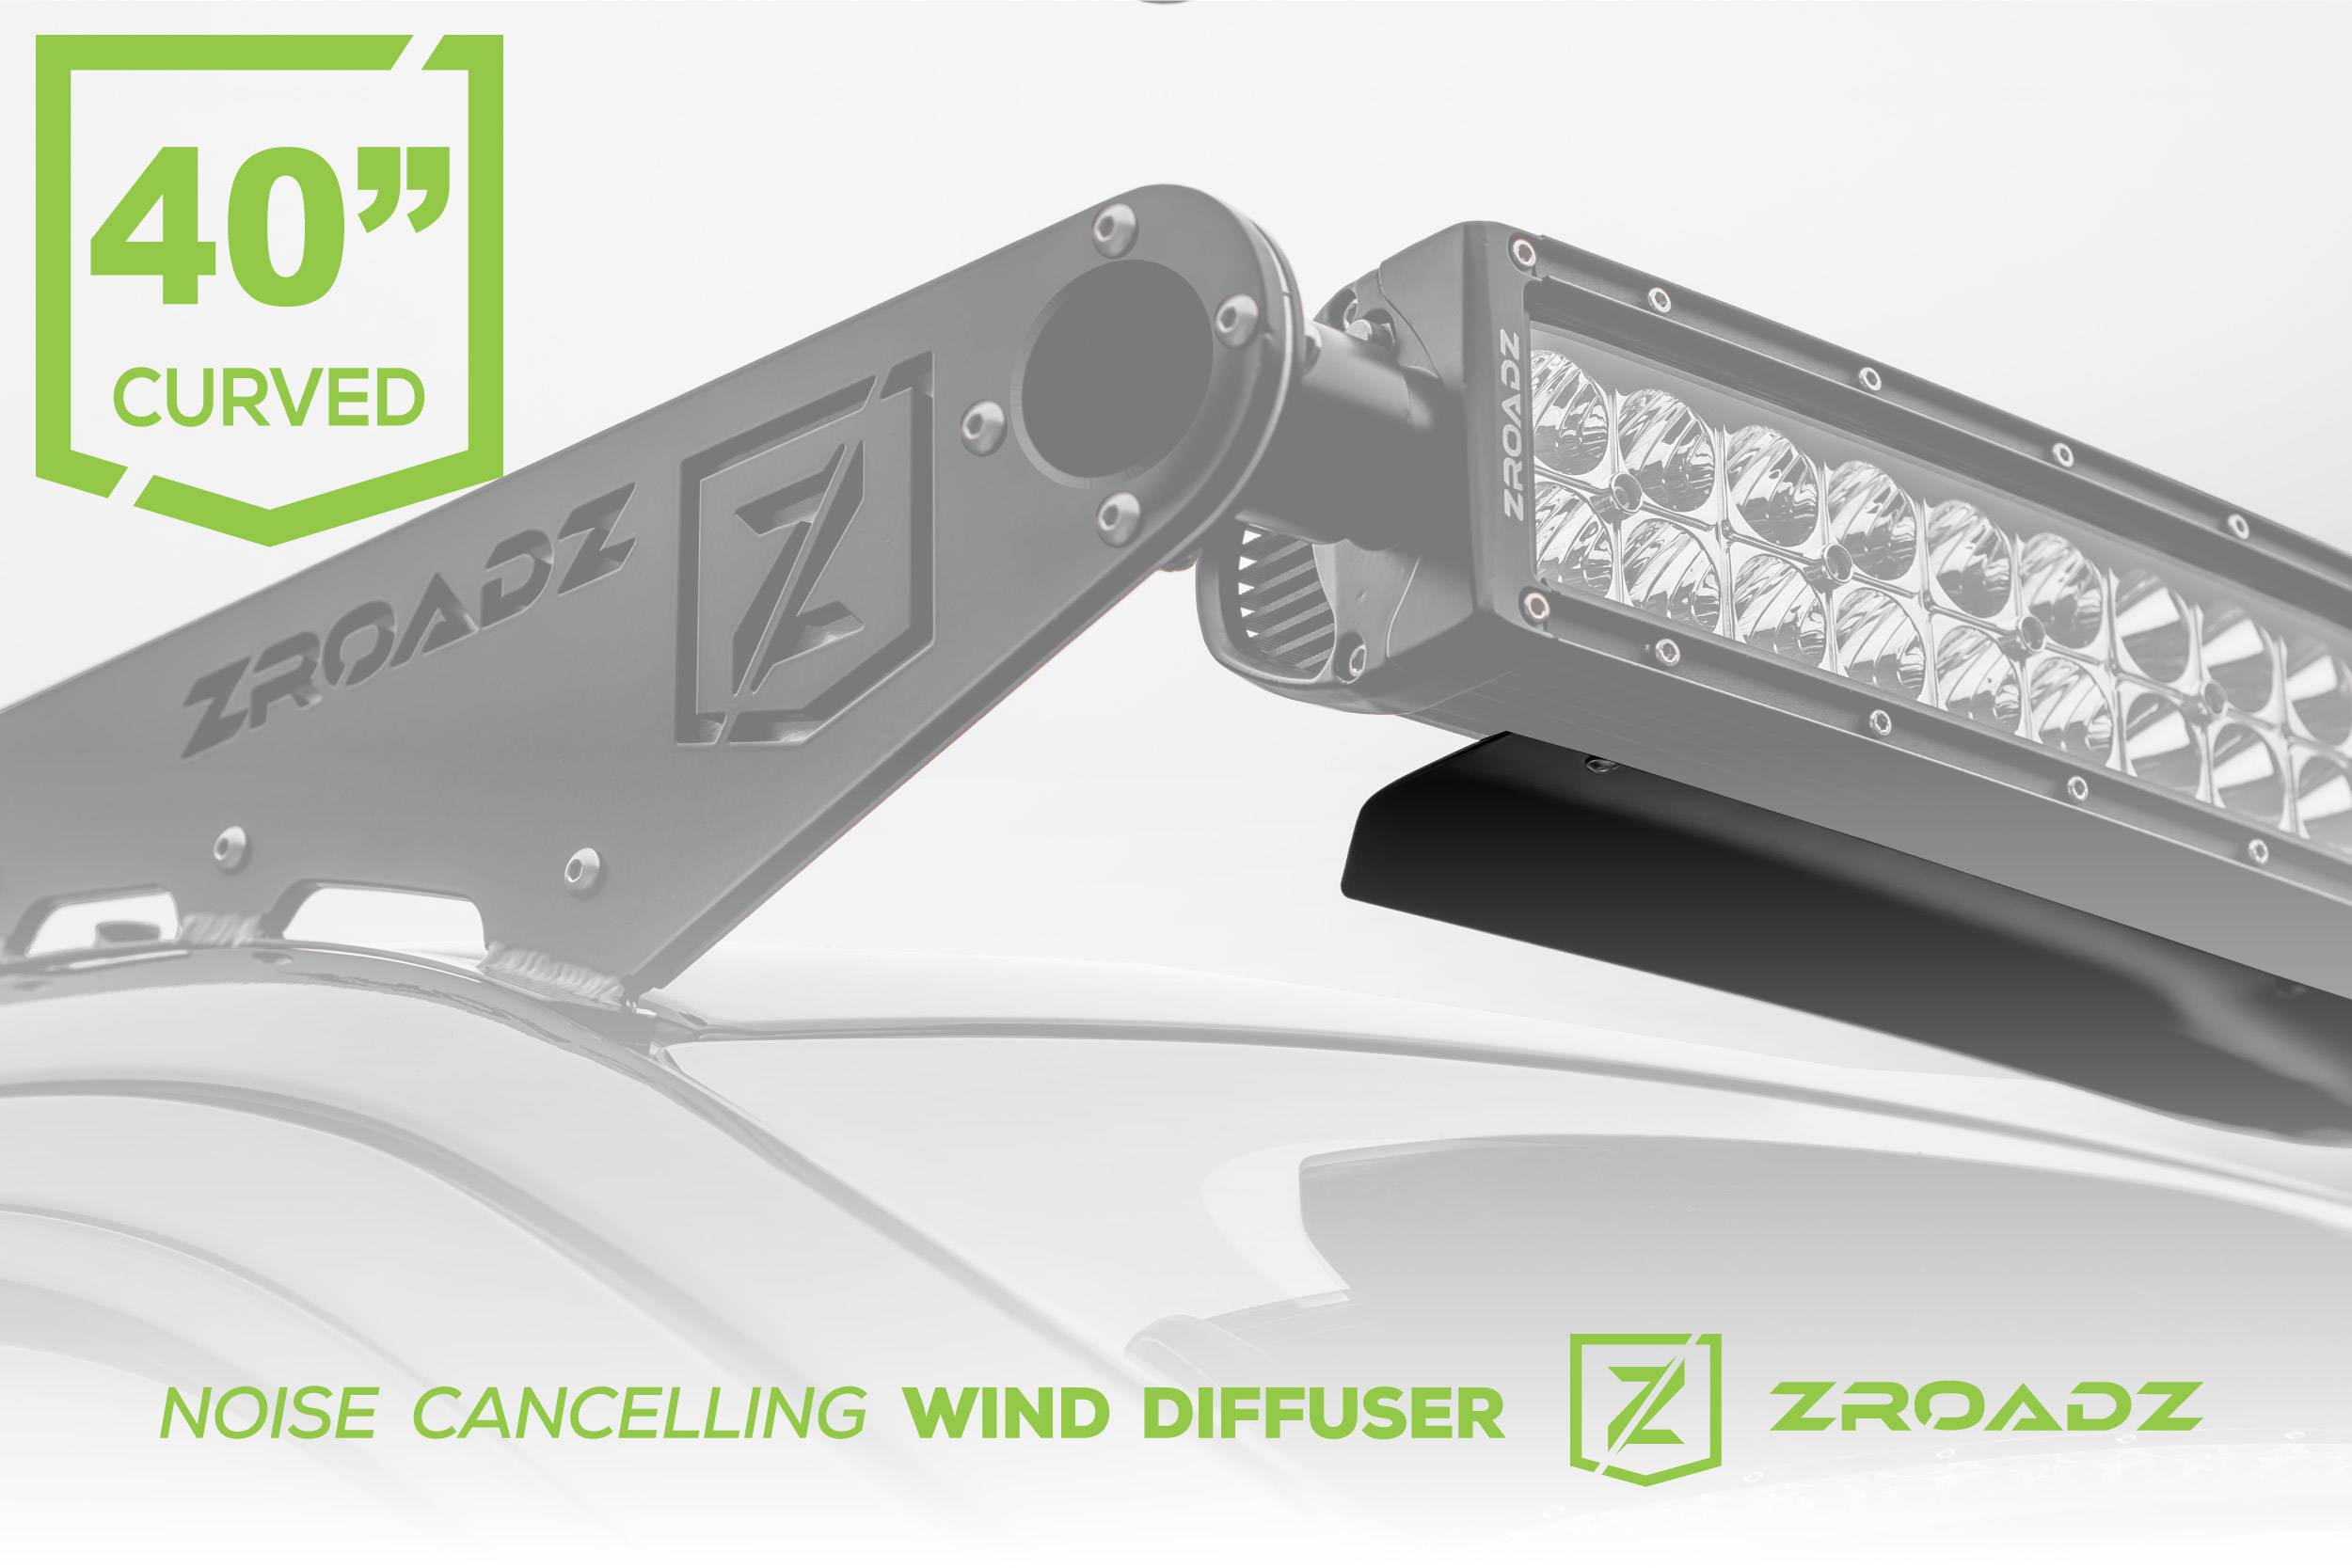 ZROADZ                                             - Noise Cancelling Wind Diffuser for 40 Inch Curved LED Light Bar - PN #Z330040C